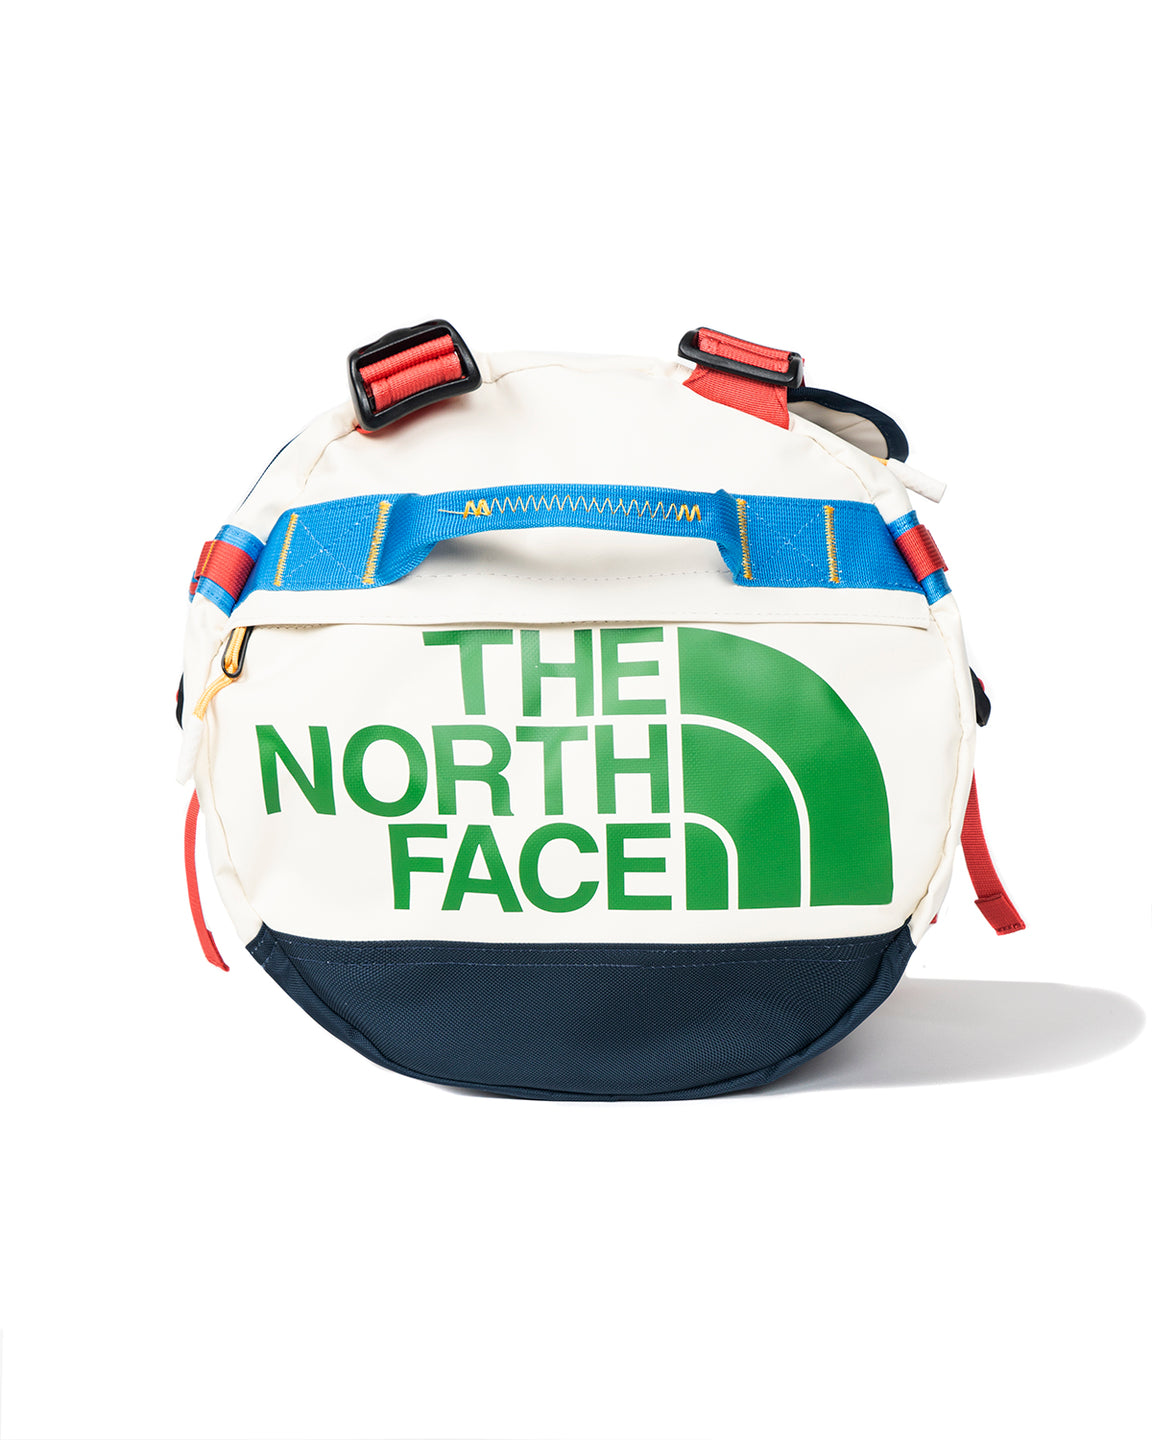 The North Face x Brain Dead Basecamp Duffel S - Vintage White